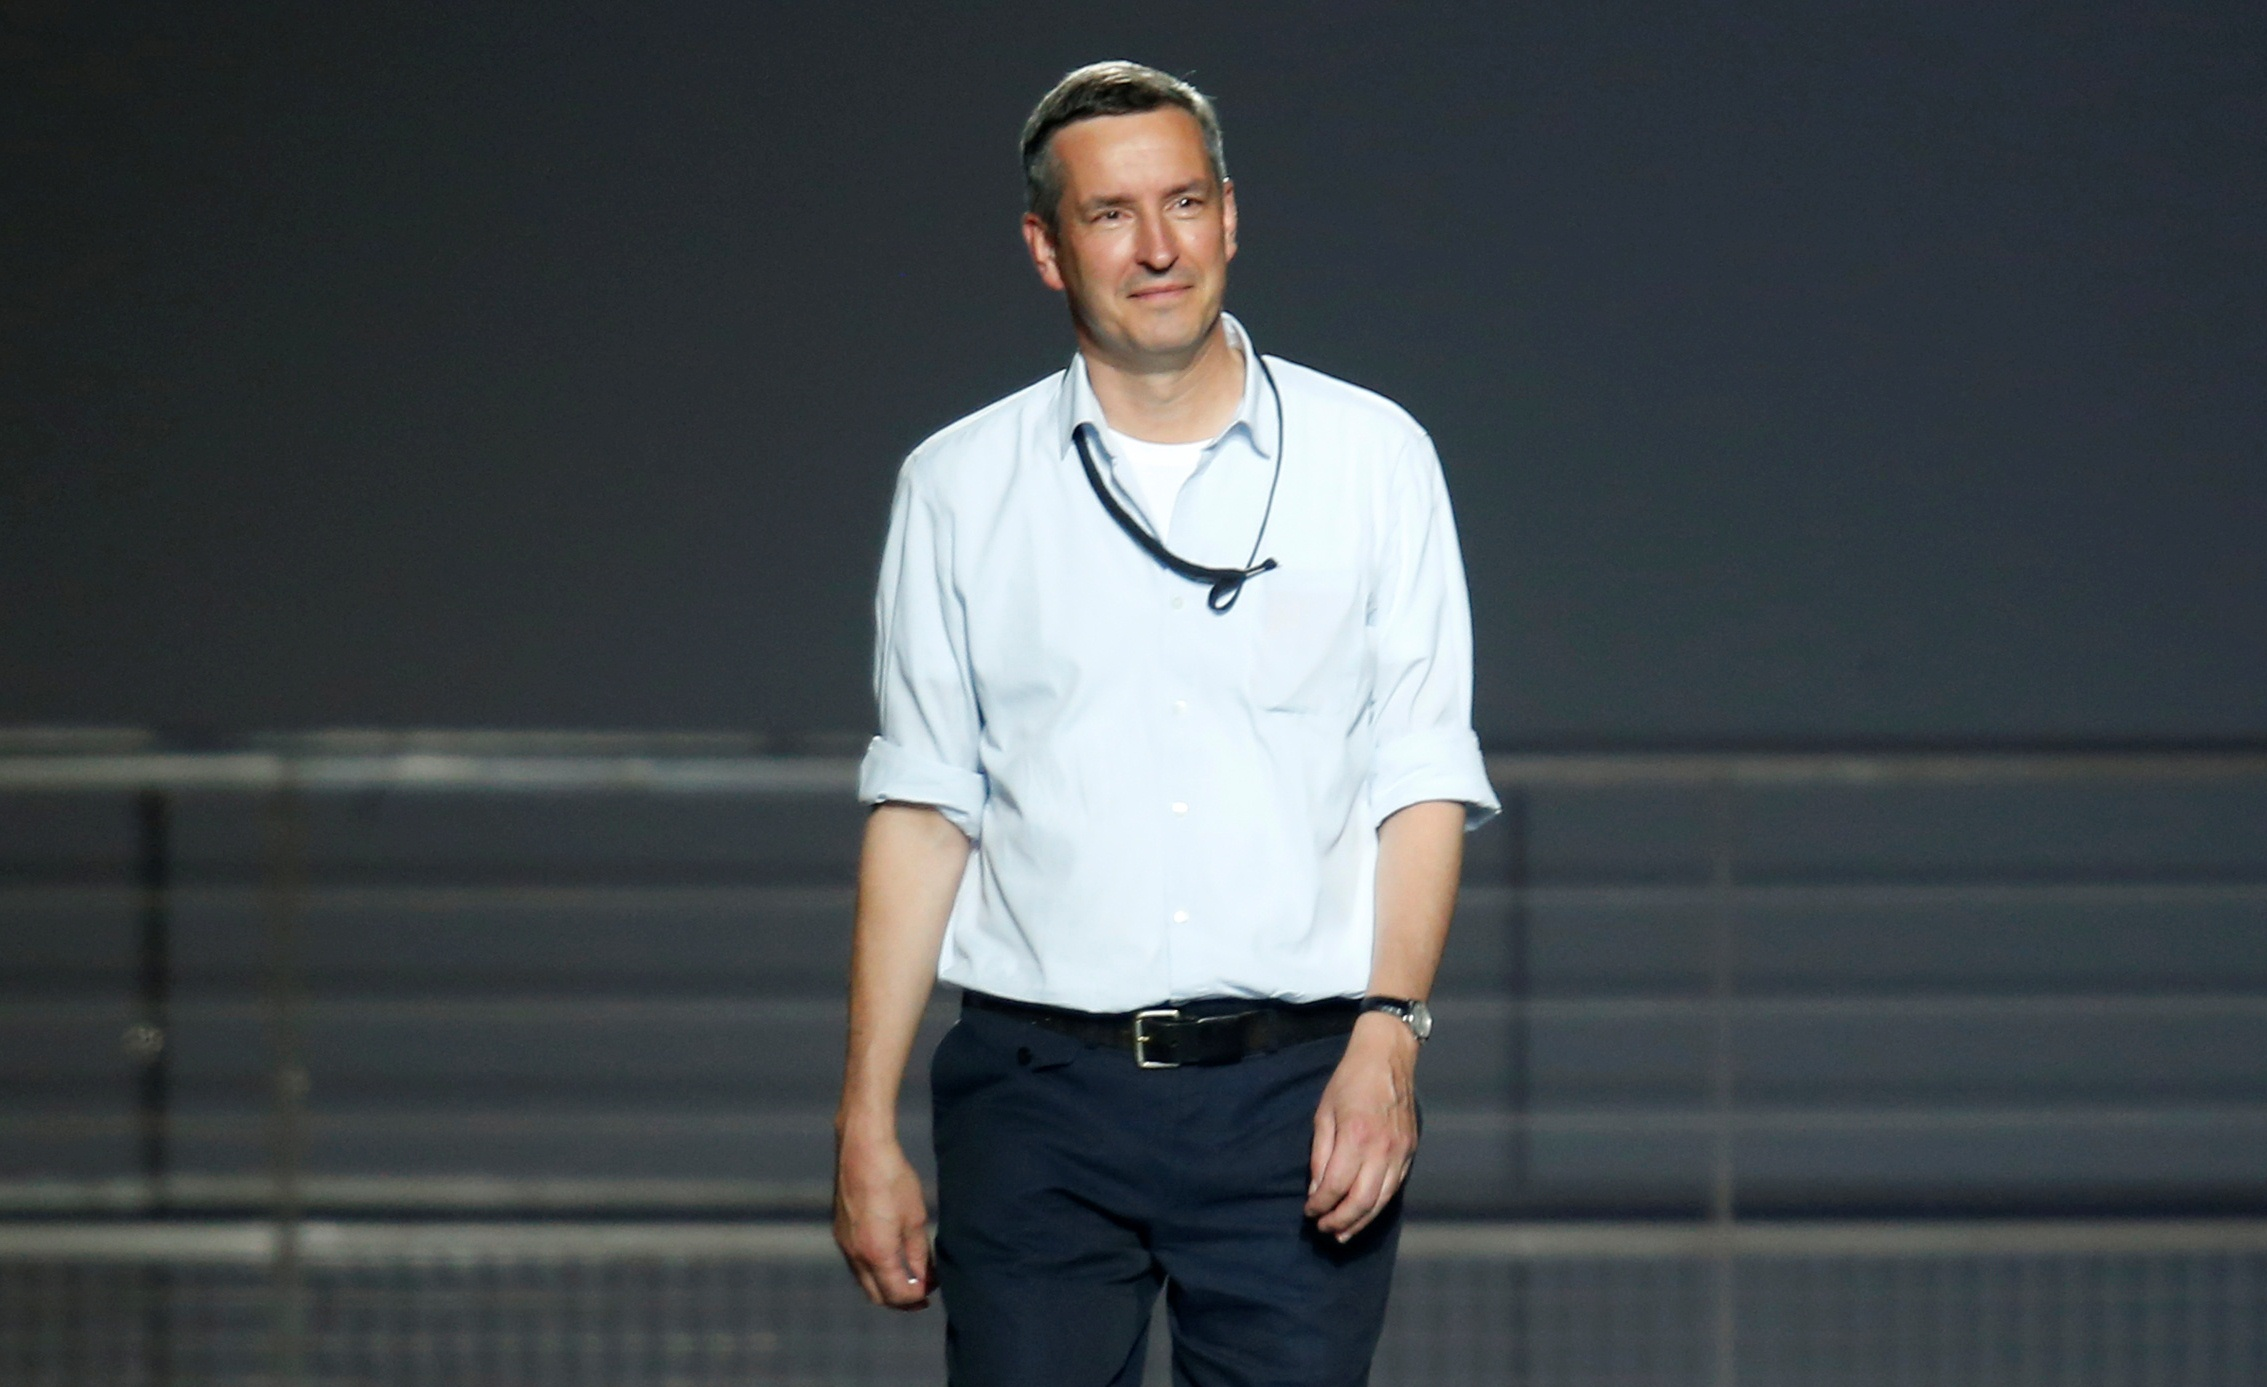 dries van noten one of belgium 39 s top fashion designers